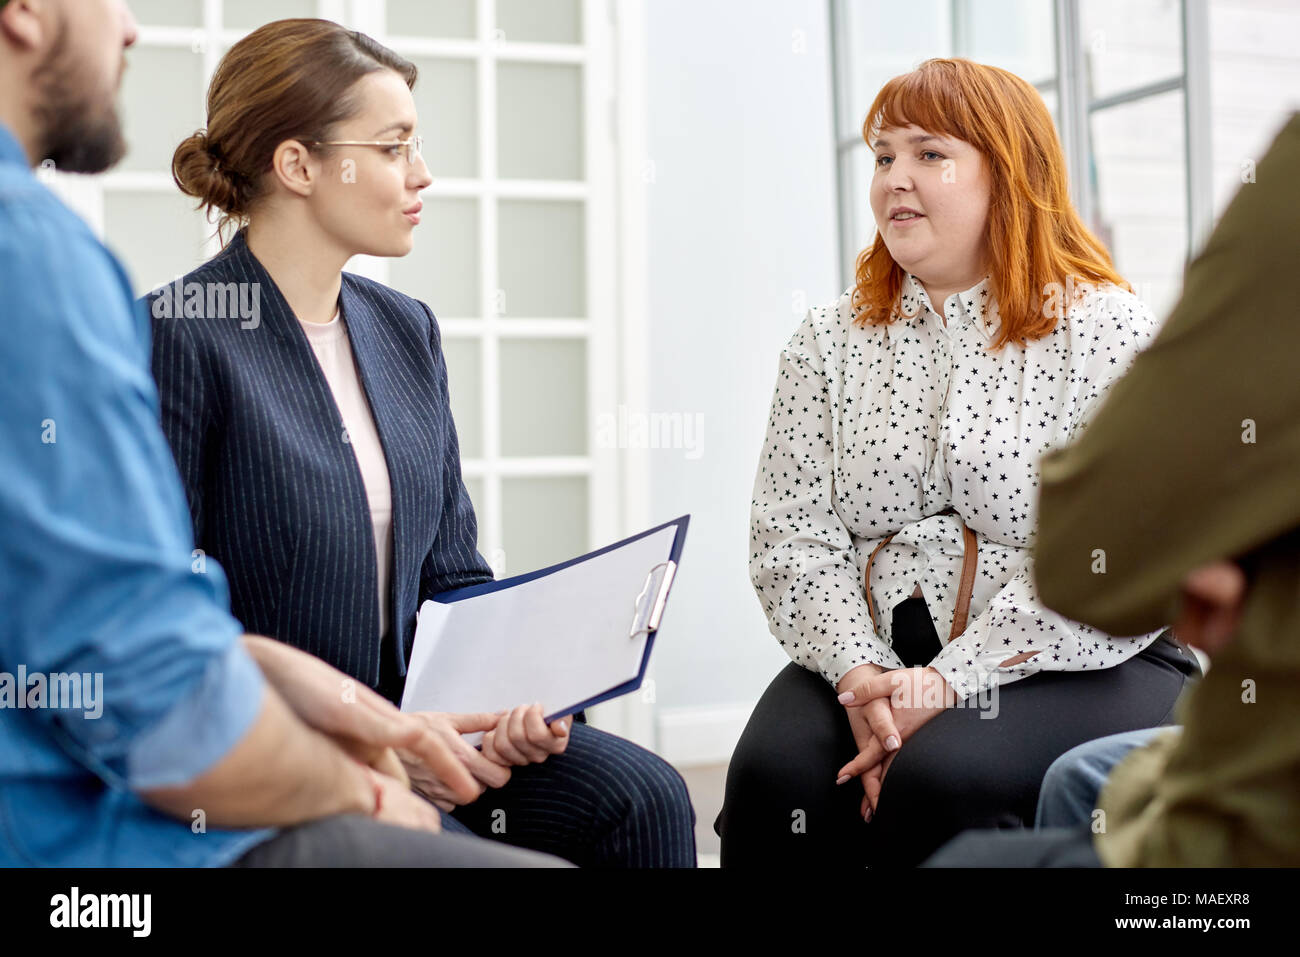 Conducting Group Therapy Session - Stock Image